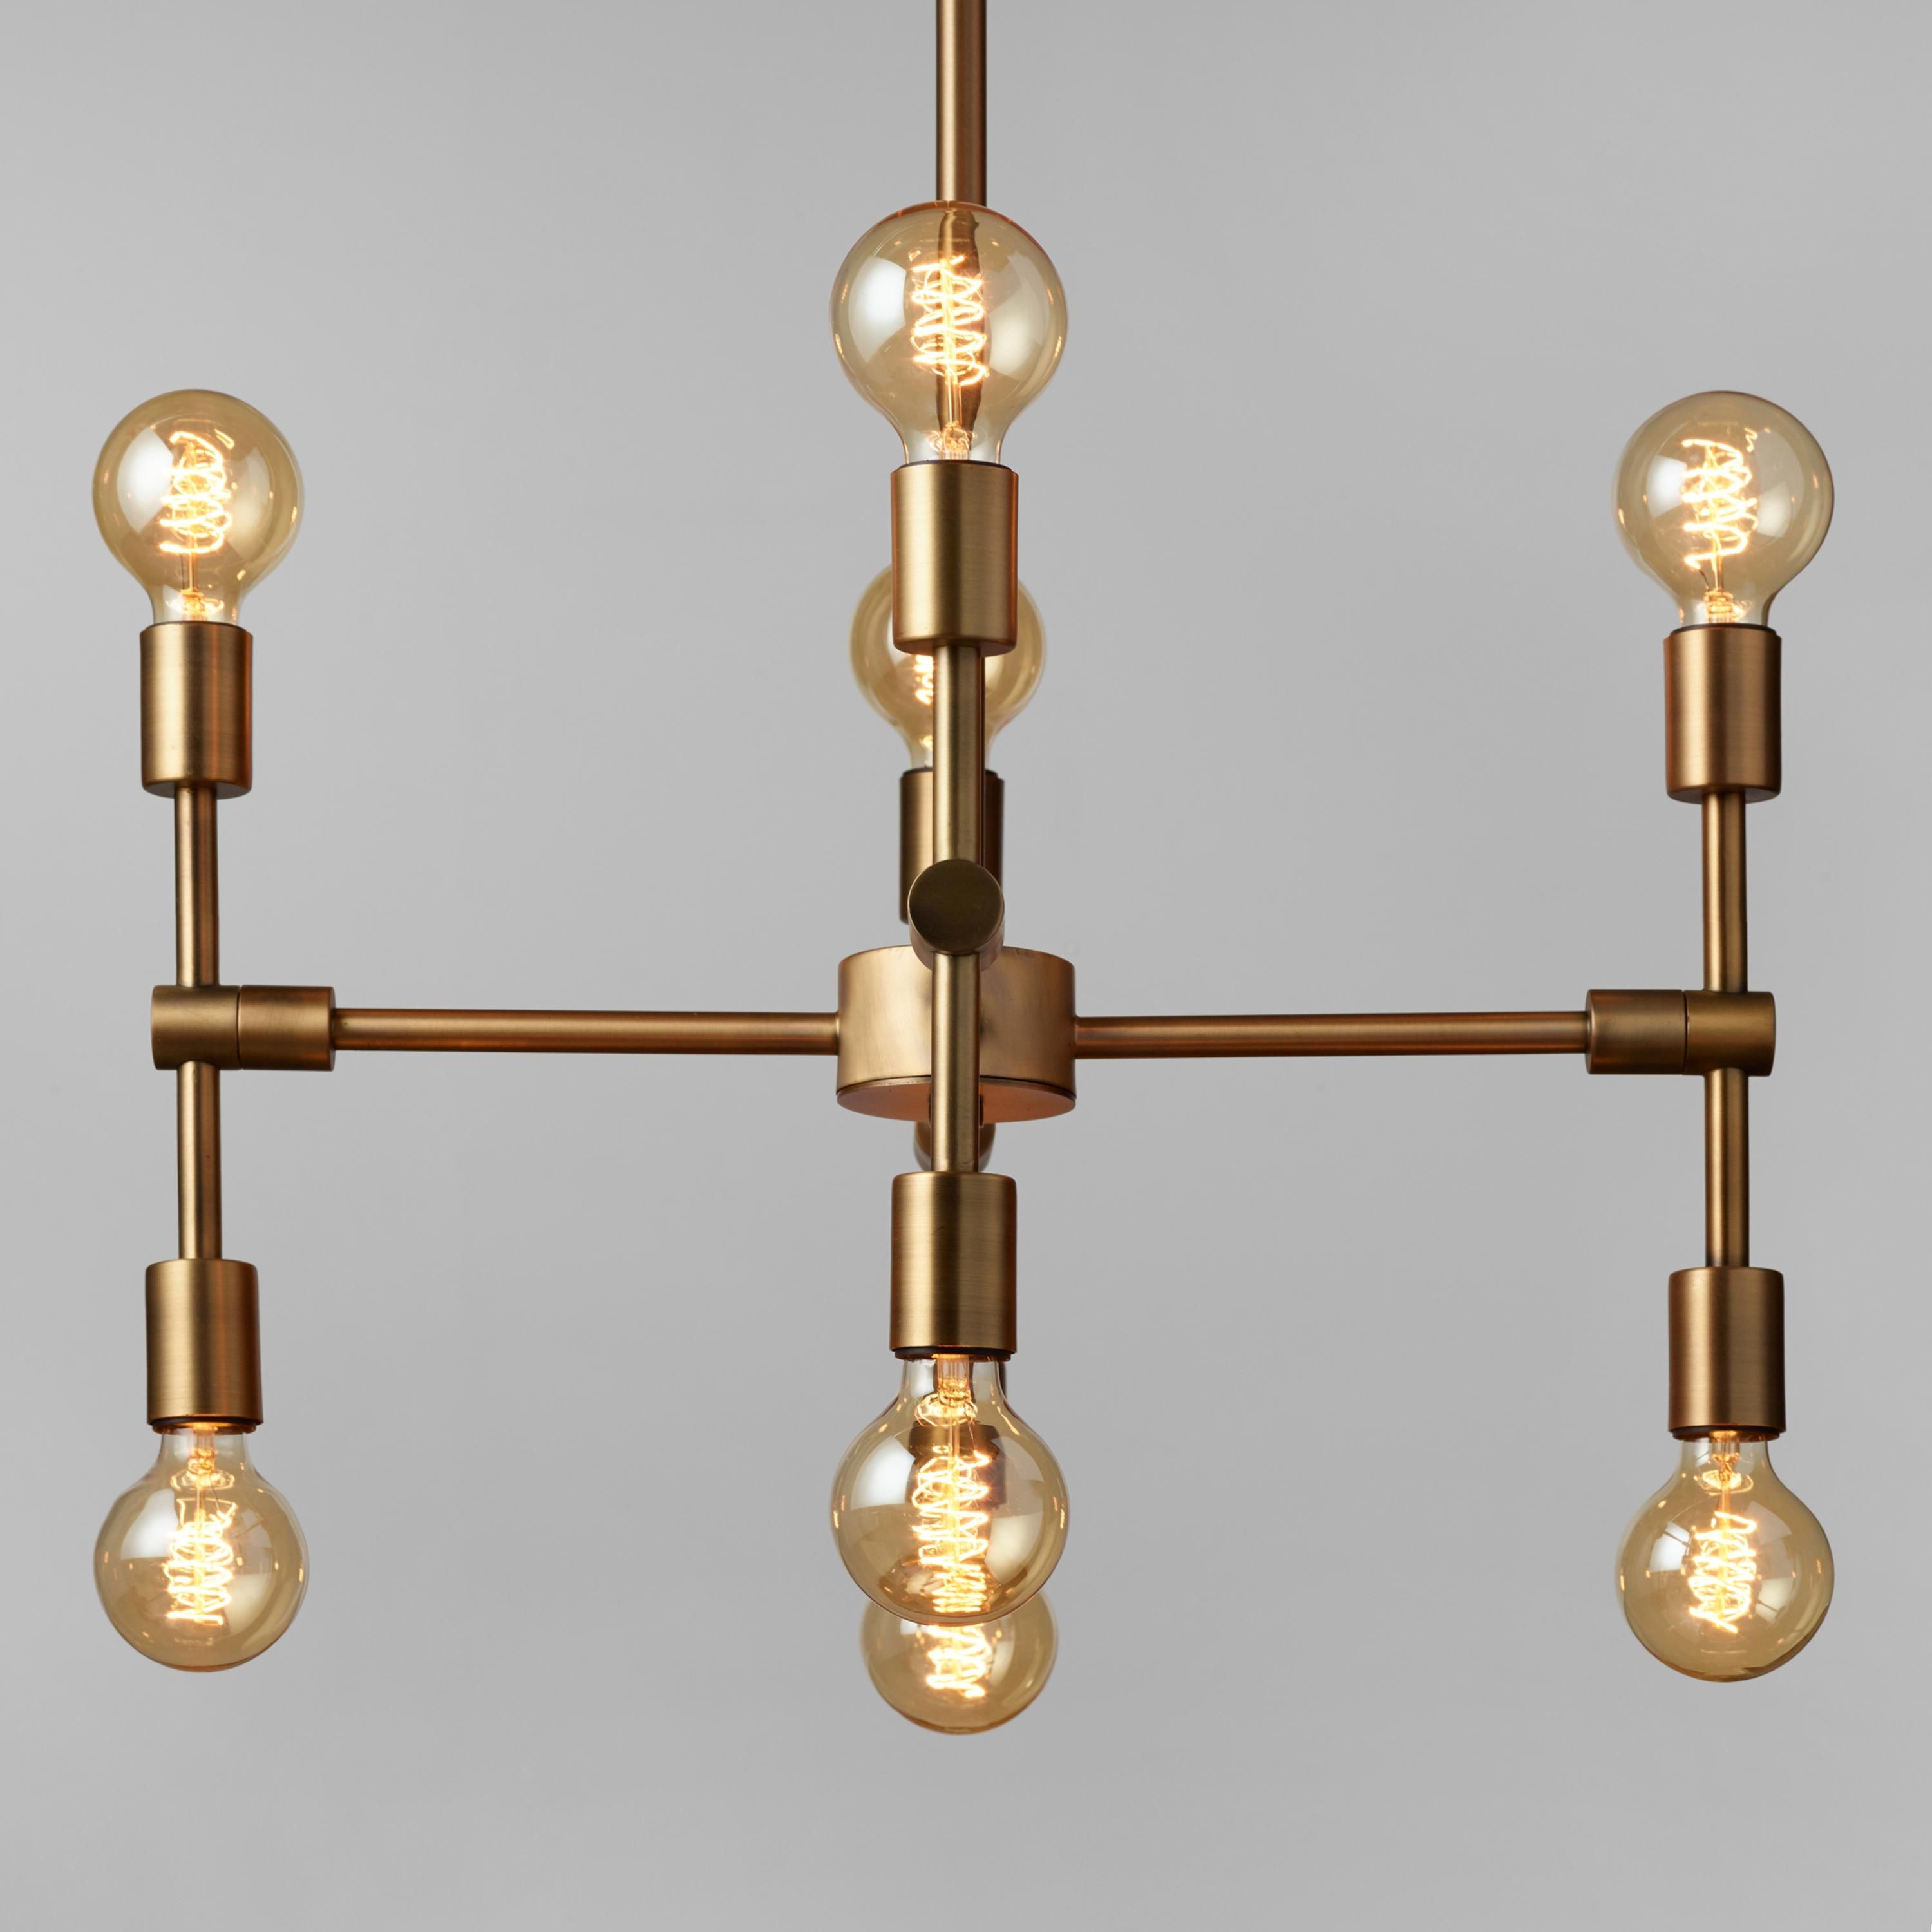 Best And Newest Bautista 6 Light Kitchen Island Bulb Pendants For Antique Gold Modular 8 Bulb Chandelier (View 11 of 20)